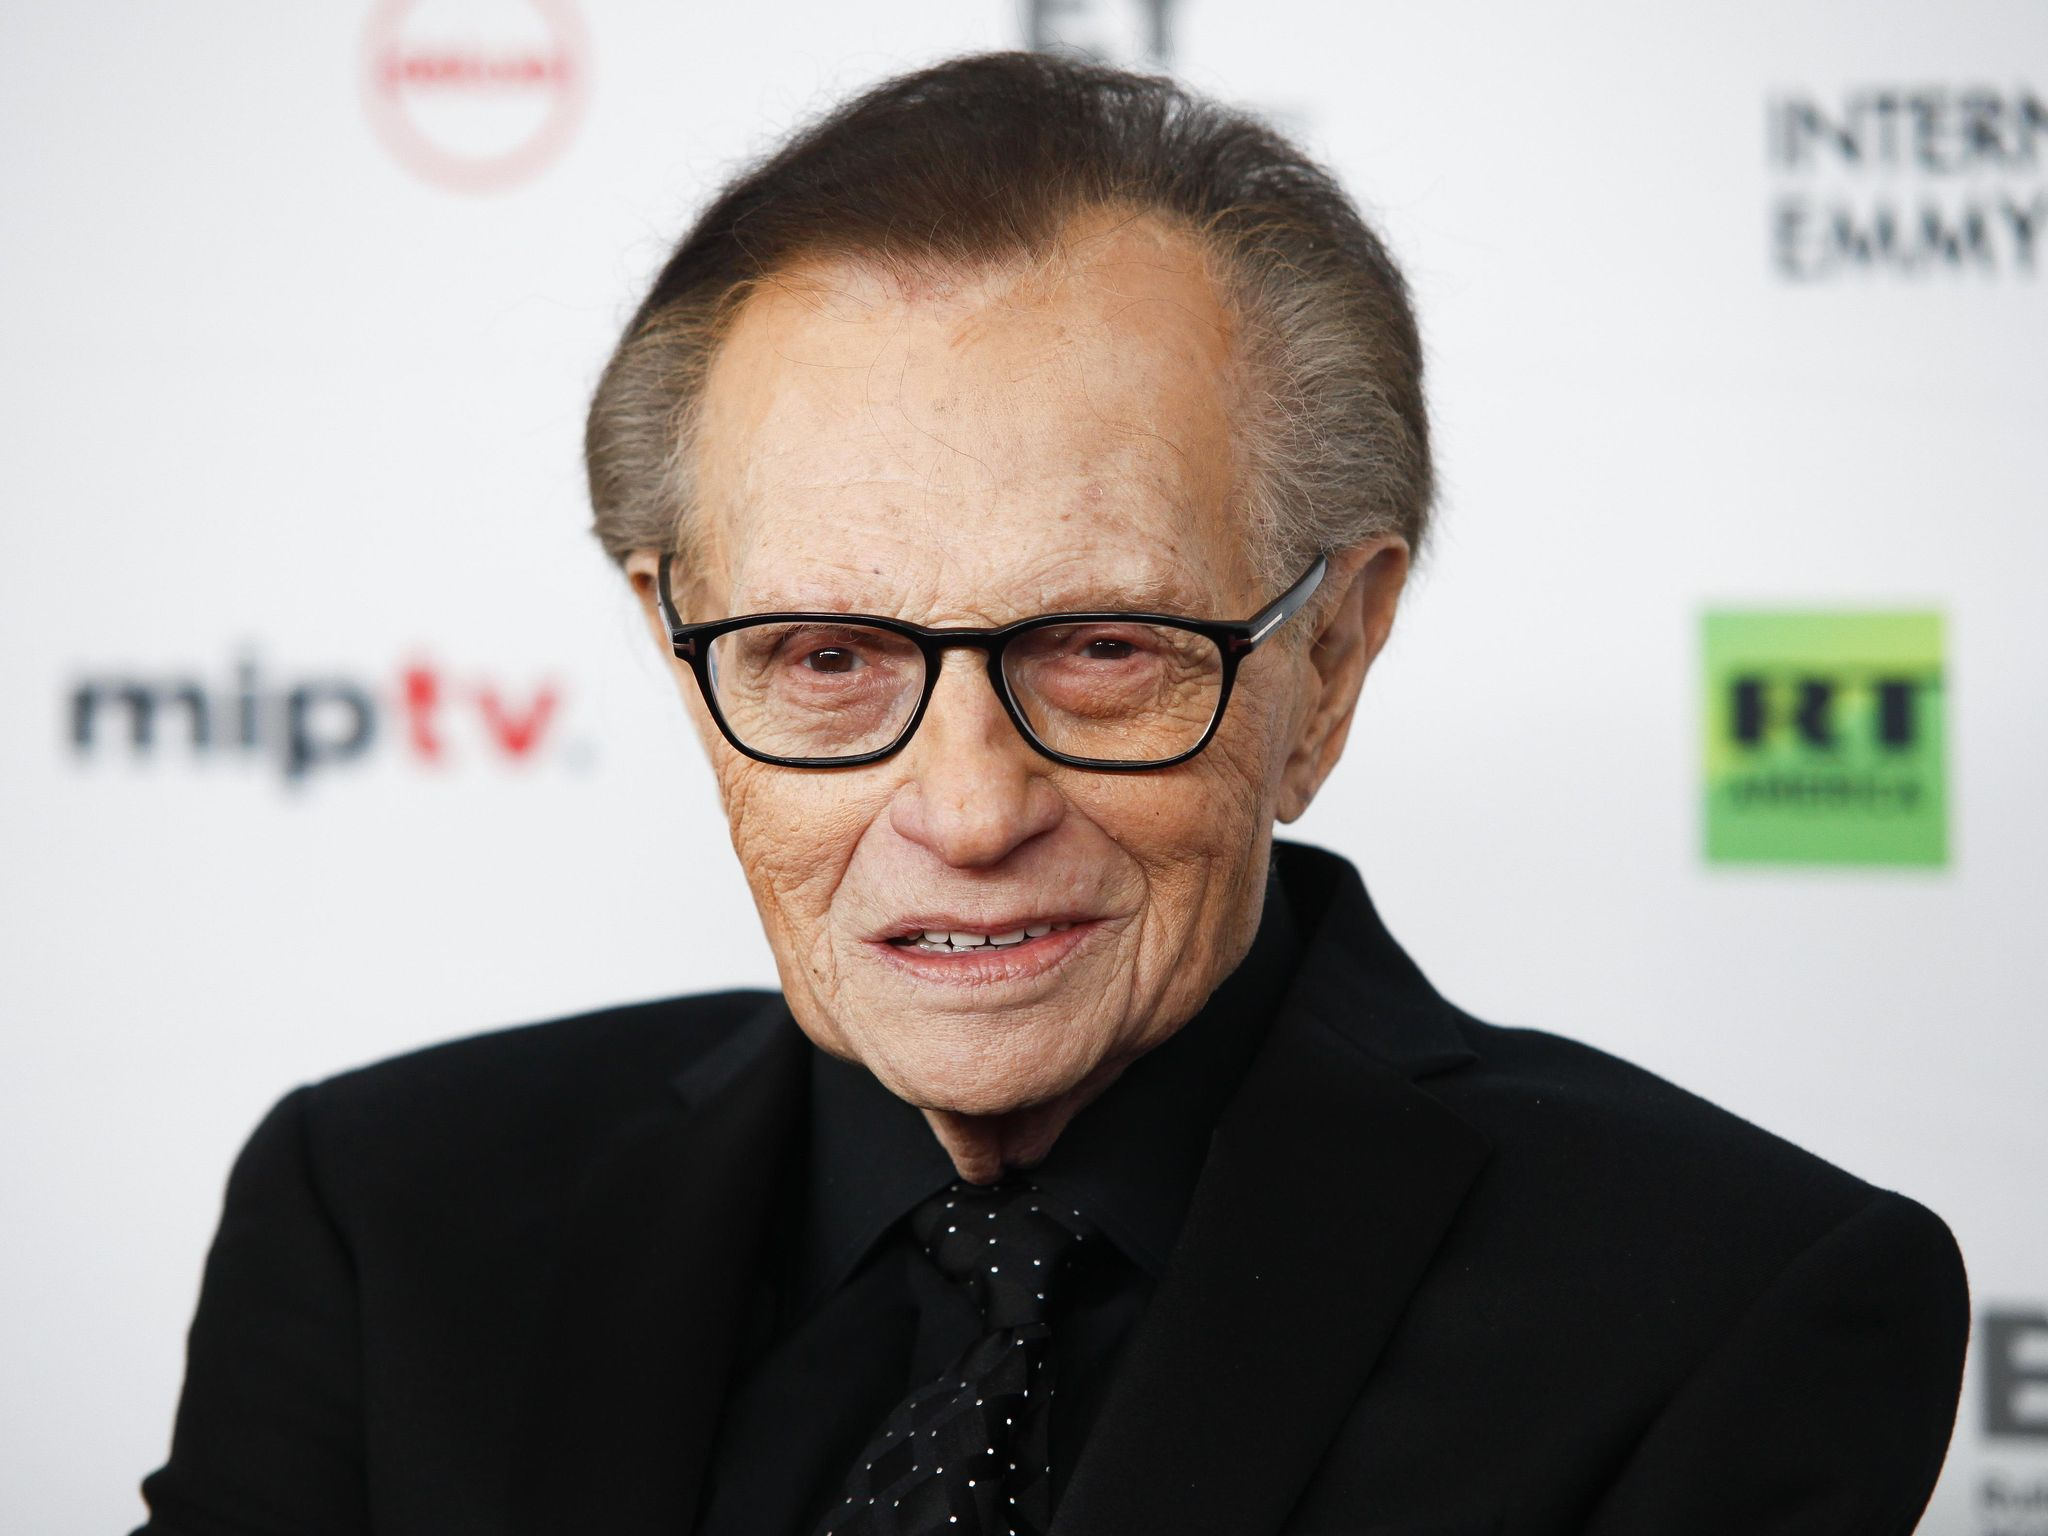 Larry King: 'CNN stopped doing news a long time ago'